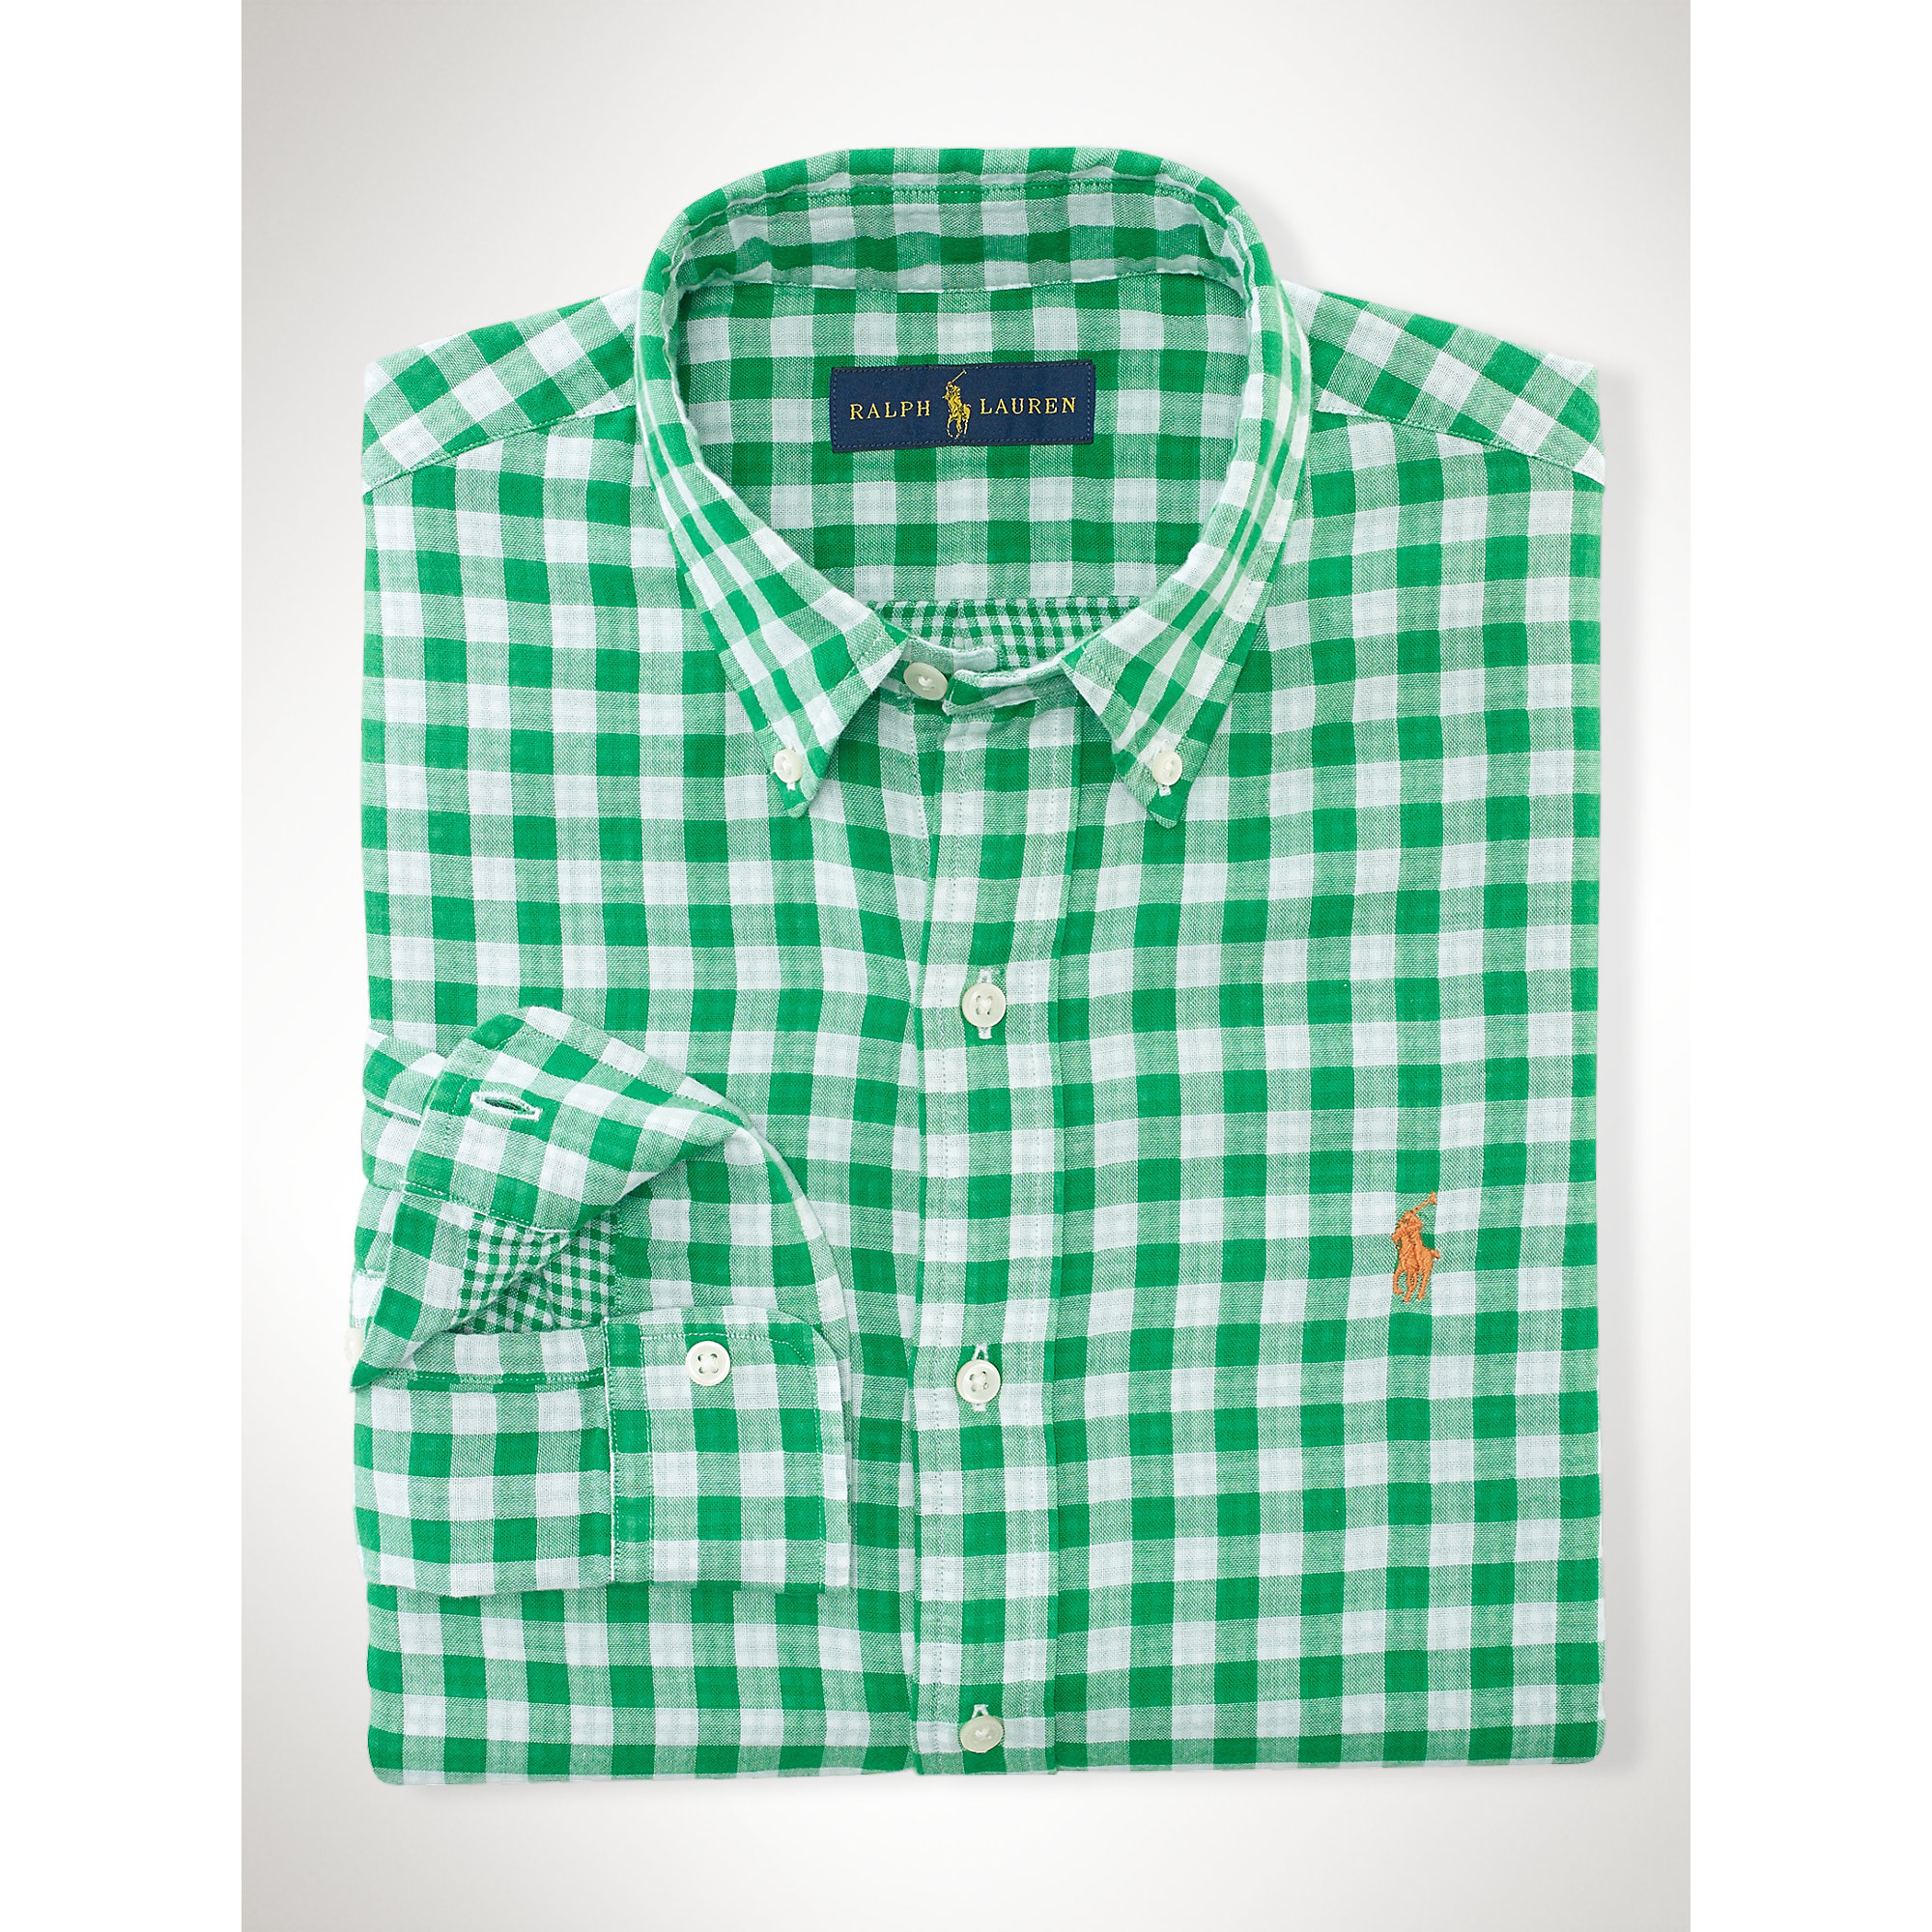 Polo ralph lauren double faced gingham shirt in green for for Mens green gingham dress shirt